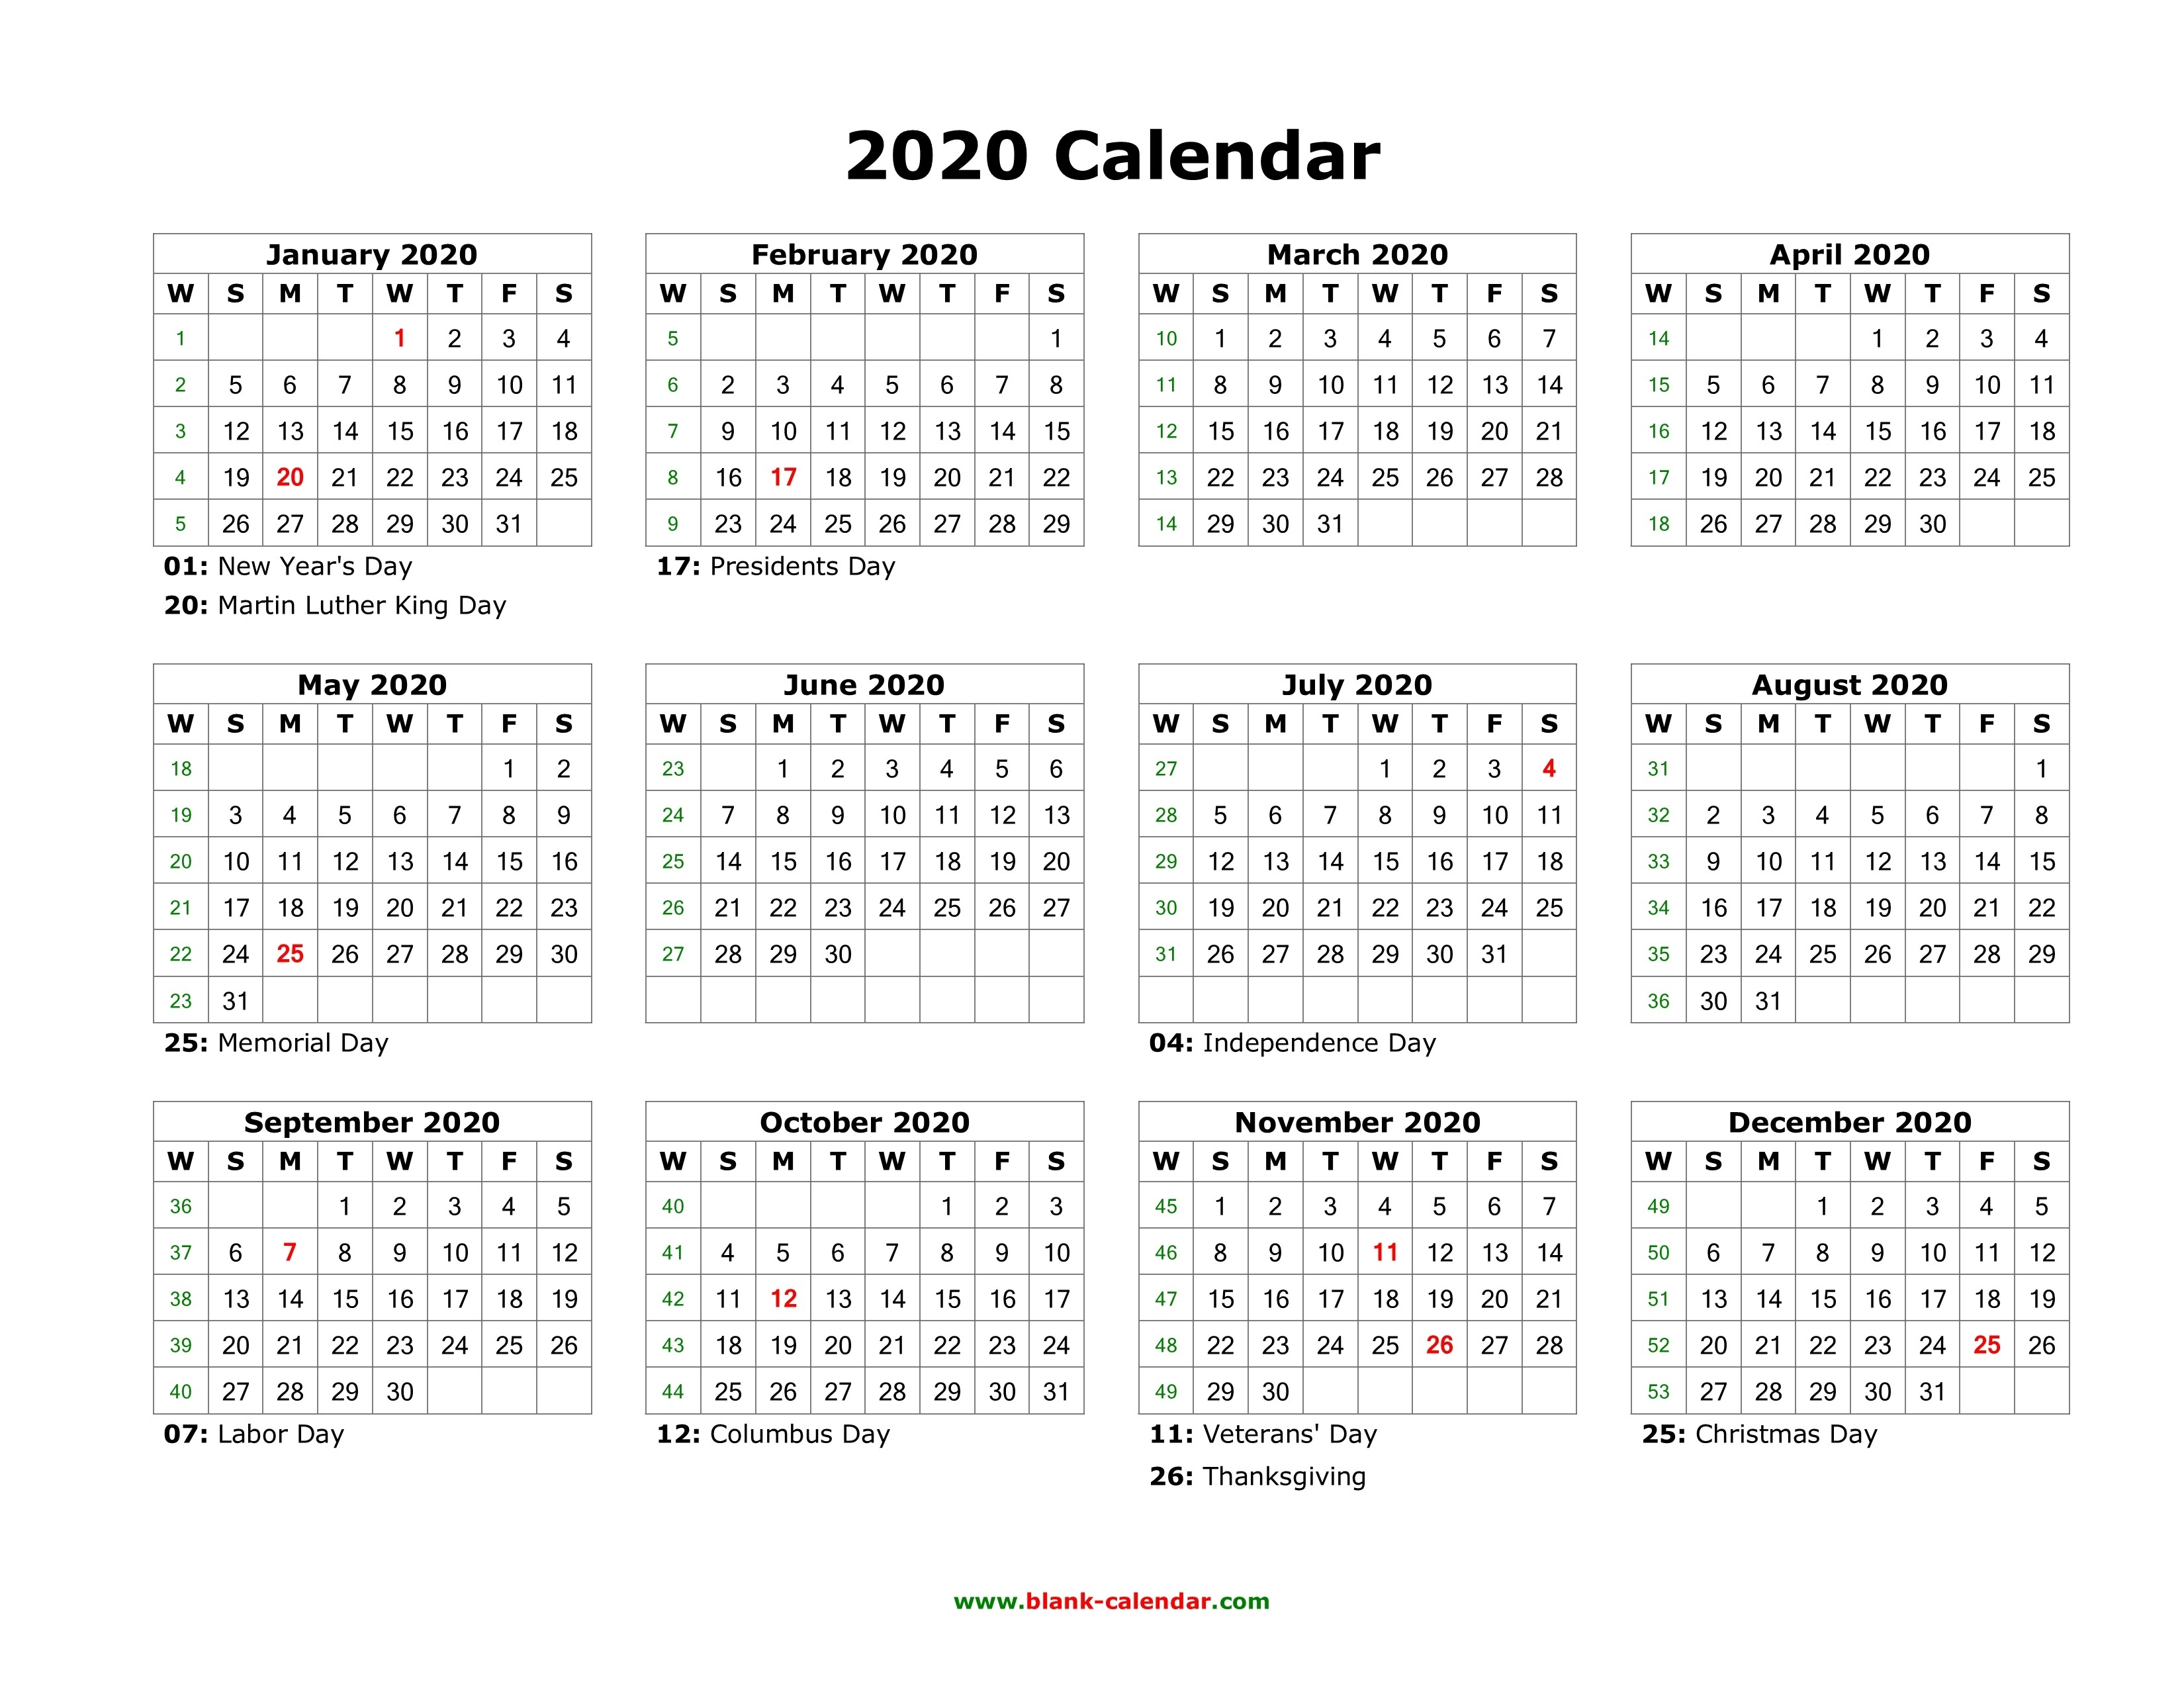 Blank Calendar 2020 | Free Download Calendar Templates-Calendar 2020 With Us Holidays Printable